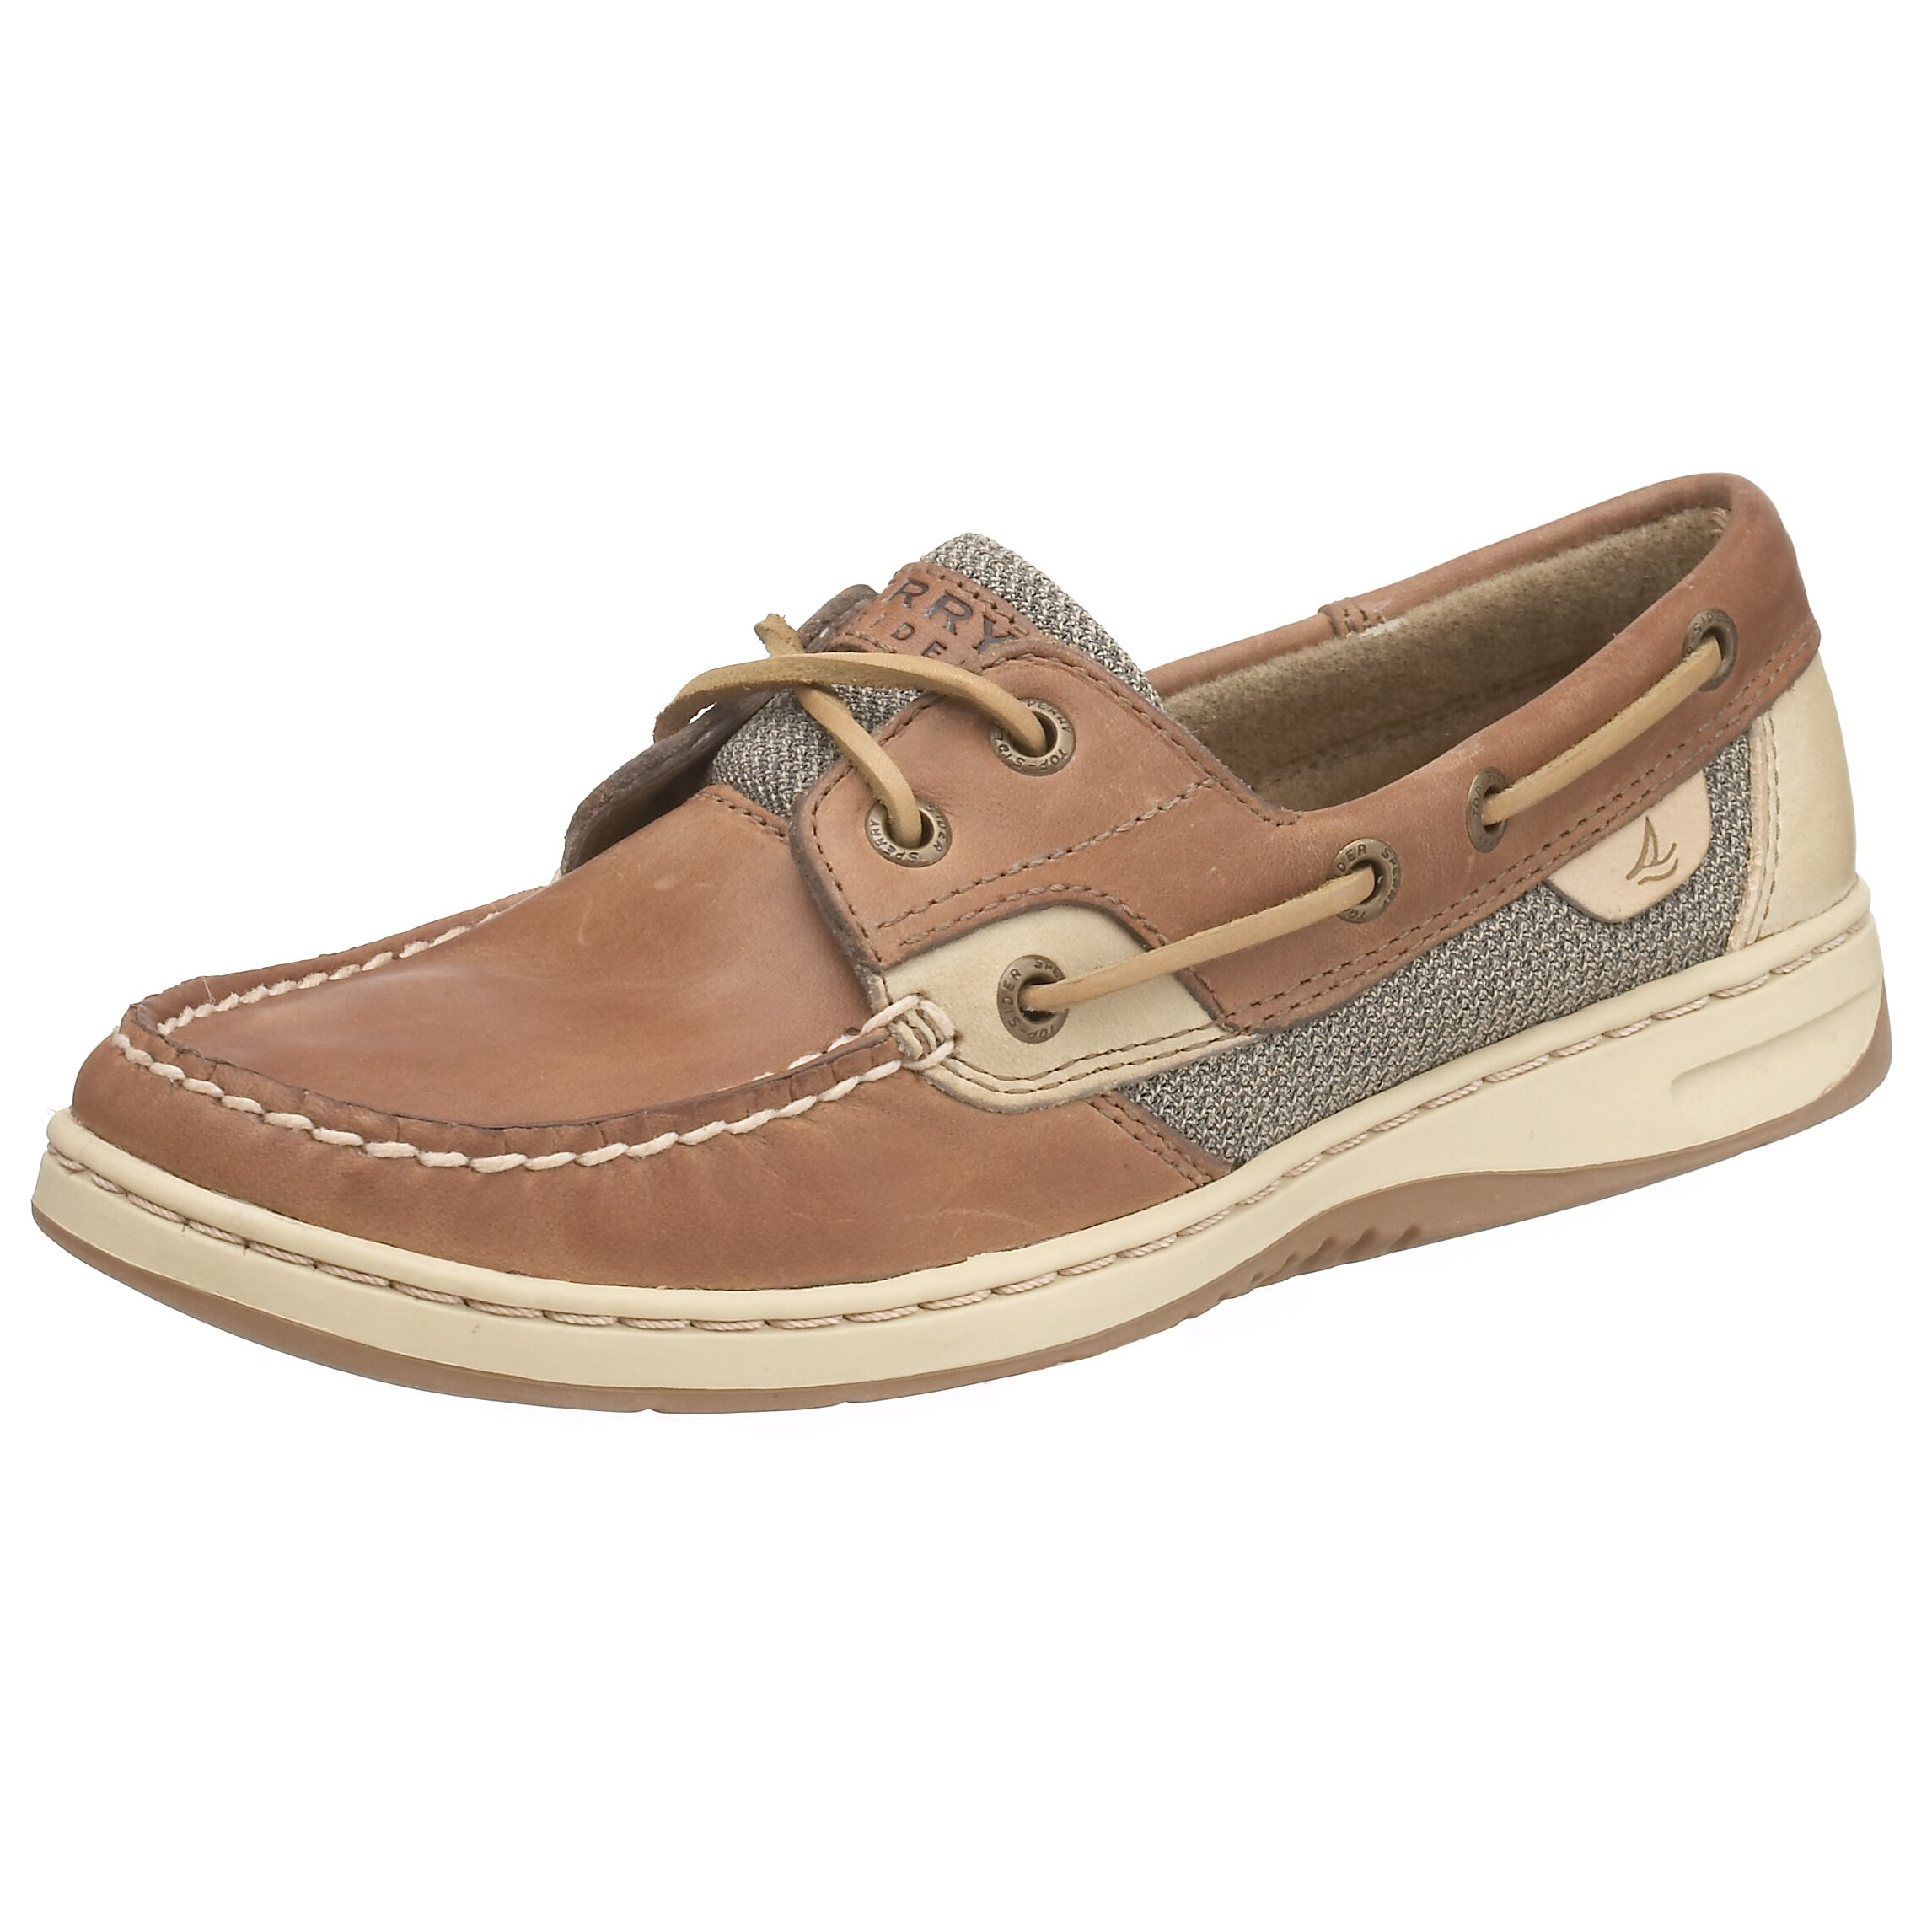 Sperry Top-Sider Women's Bluefish 2 Eye Boat Shoe